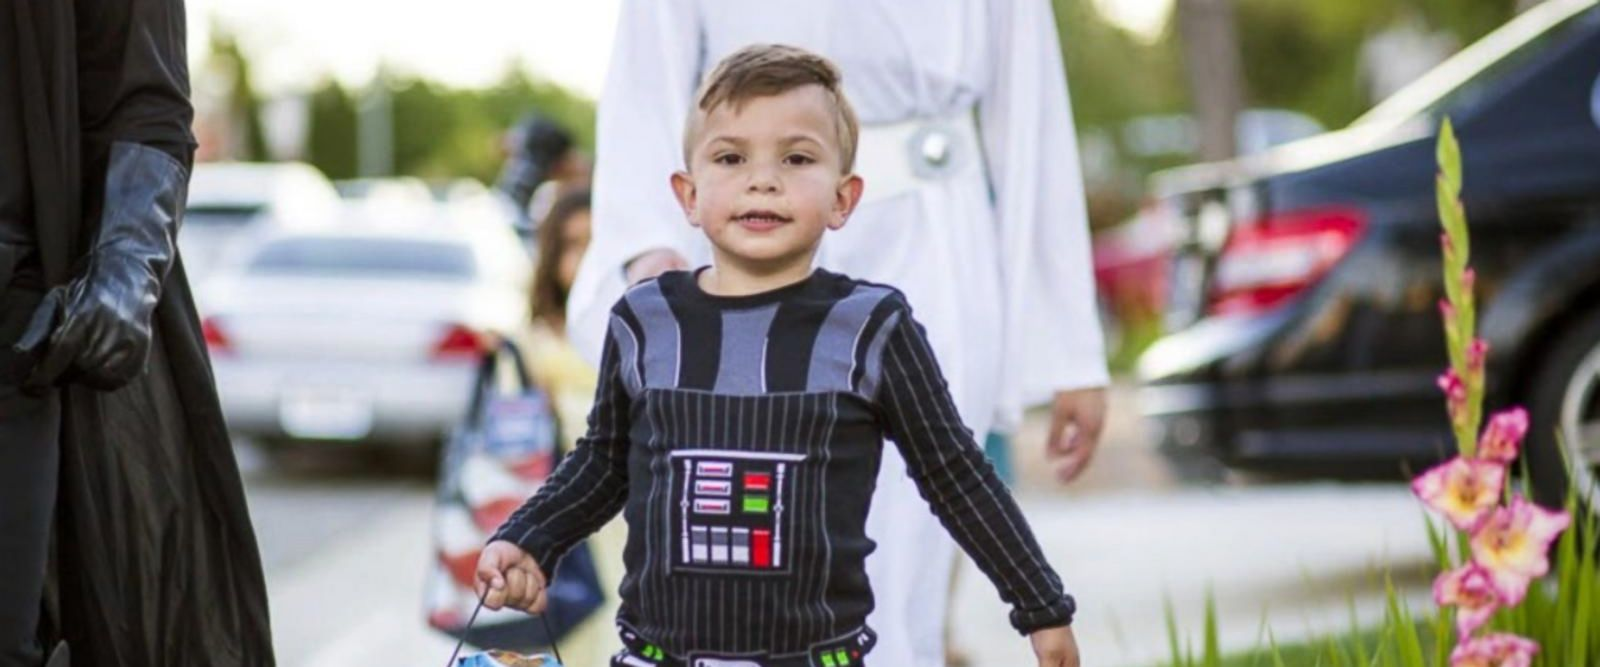 Carter Sarkar's community threw him an early Halloween party in celebration of his 5th birthday on May 21.